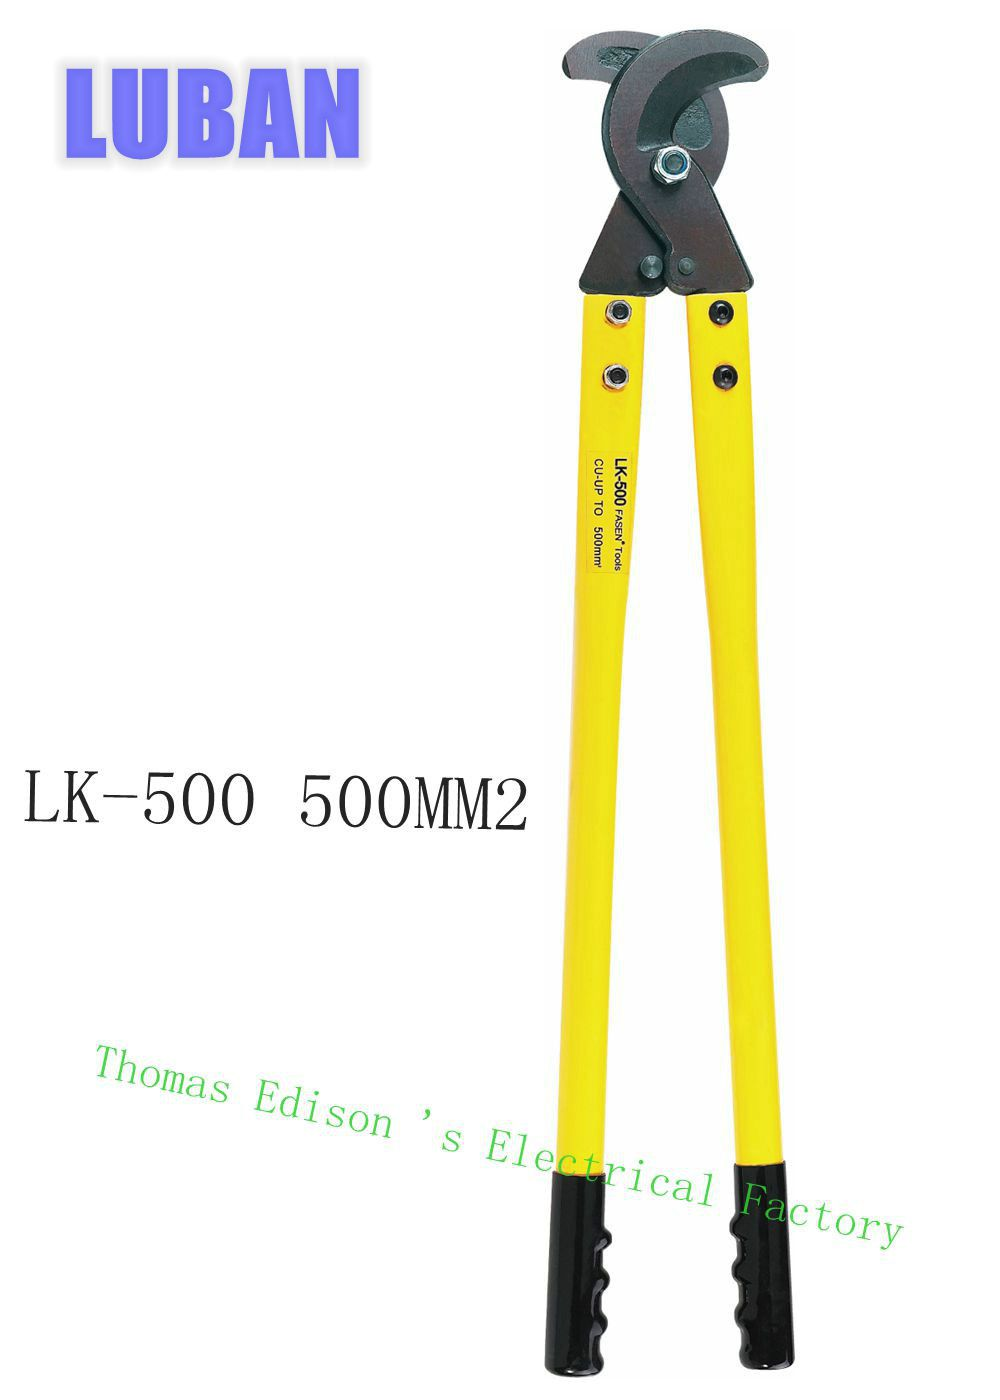 LK-500 500mm2 Max cutting Hand Cable Cutter Plier, Wire Cutter Plier, Hand Tool, not for cutting steel or steel wire